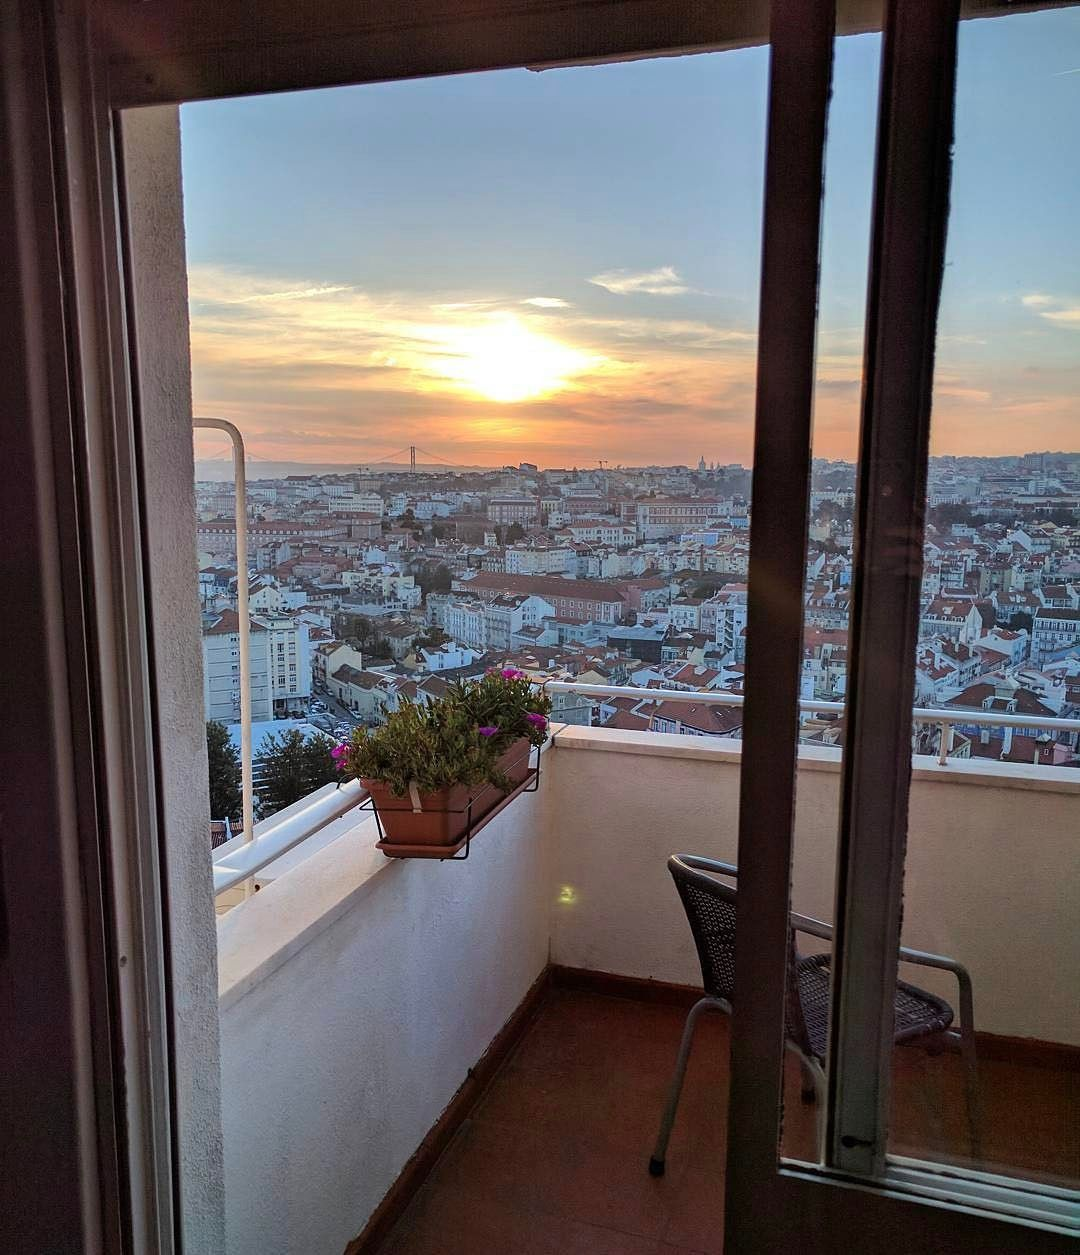 Airbnb On Instagram Tourists Crowd The Miradouros The City S